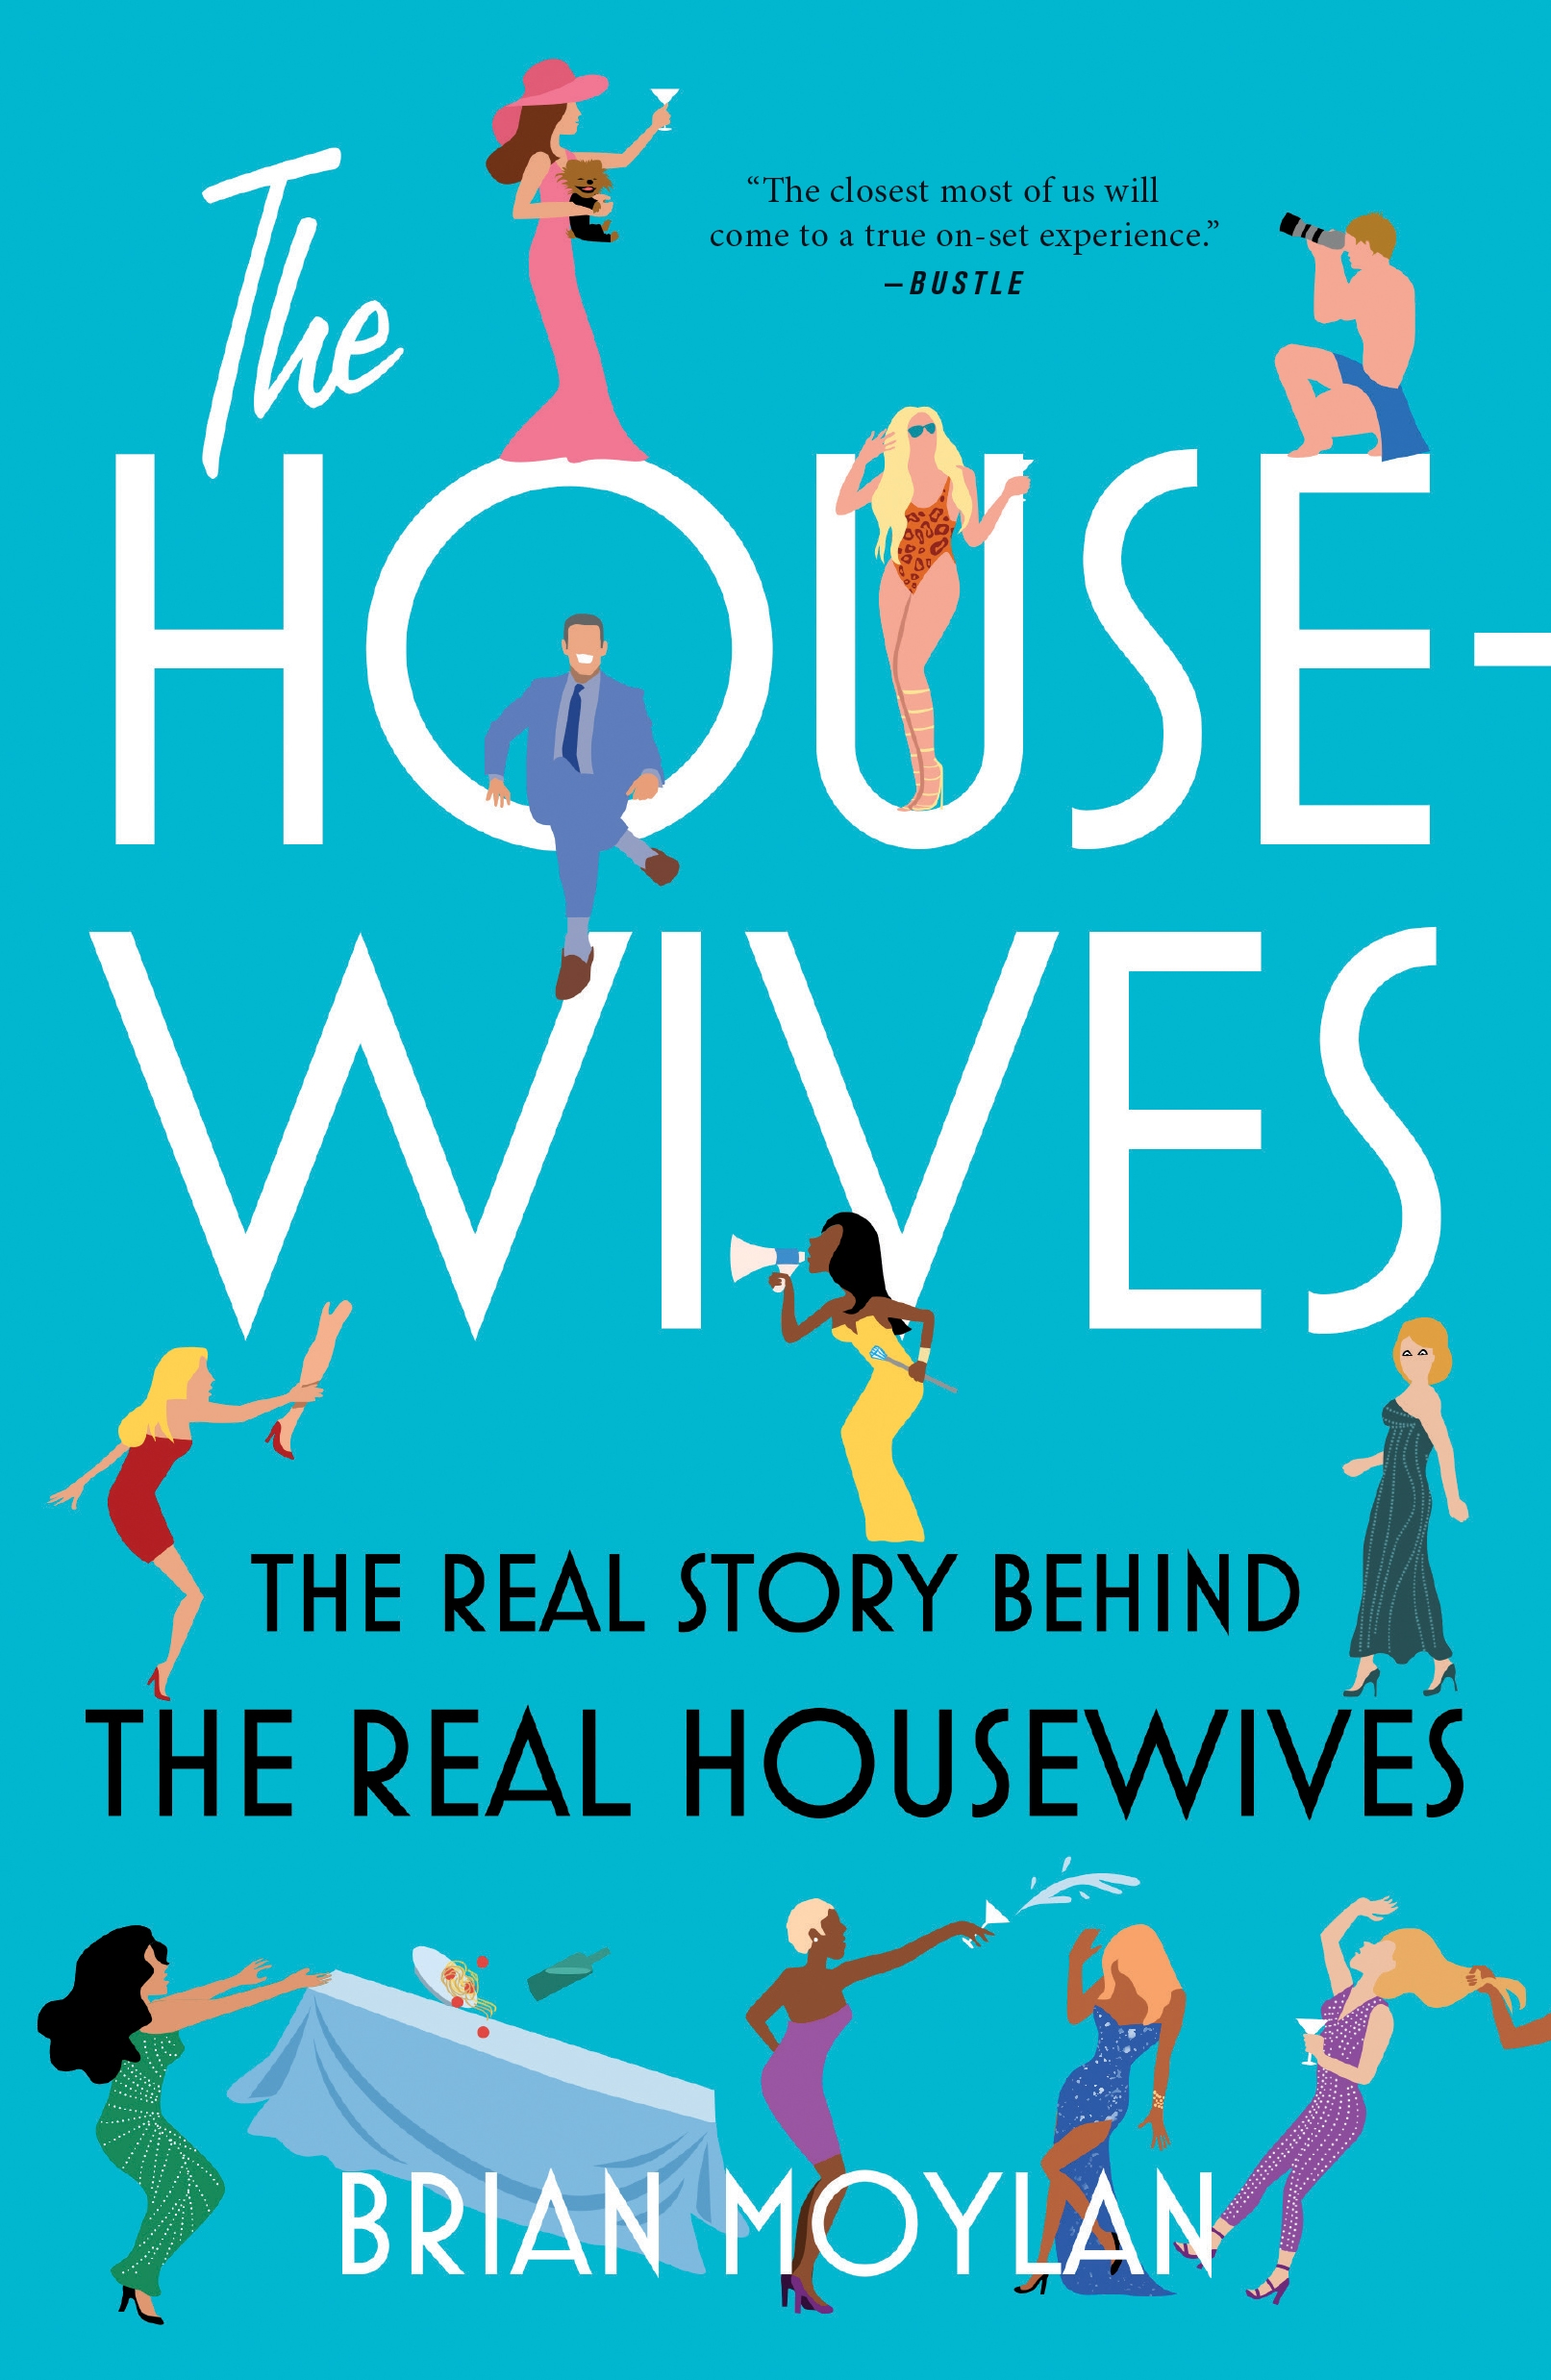 The Housewives The Real Story Behind the Real Housewives